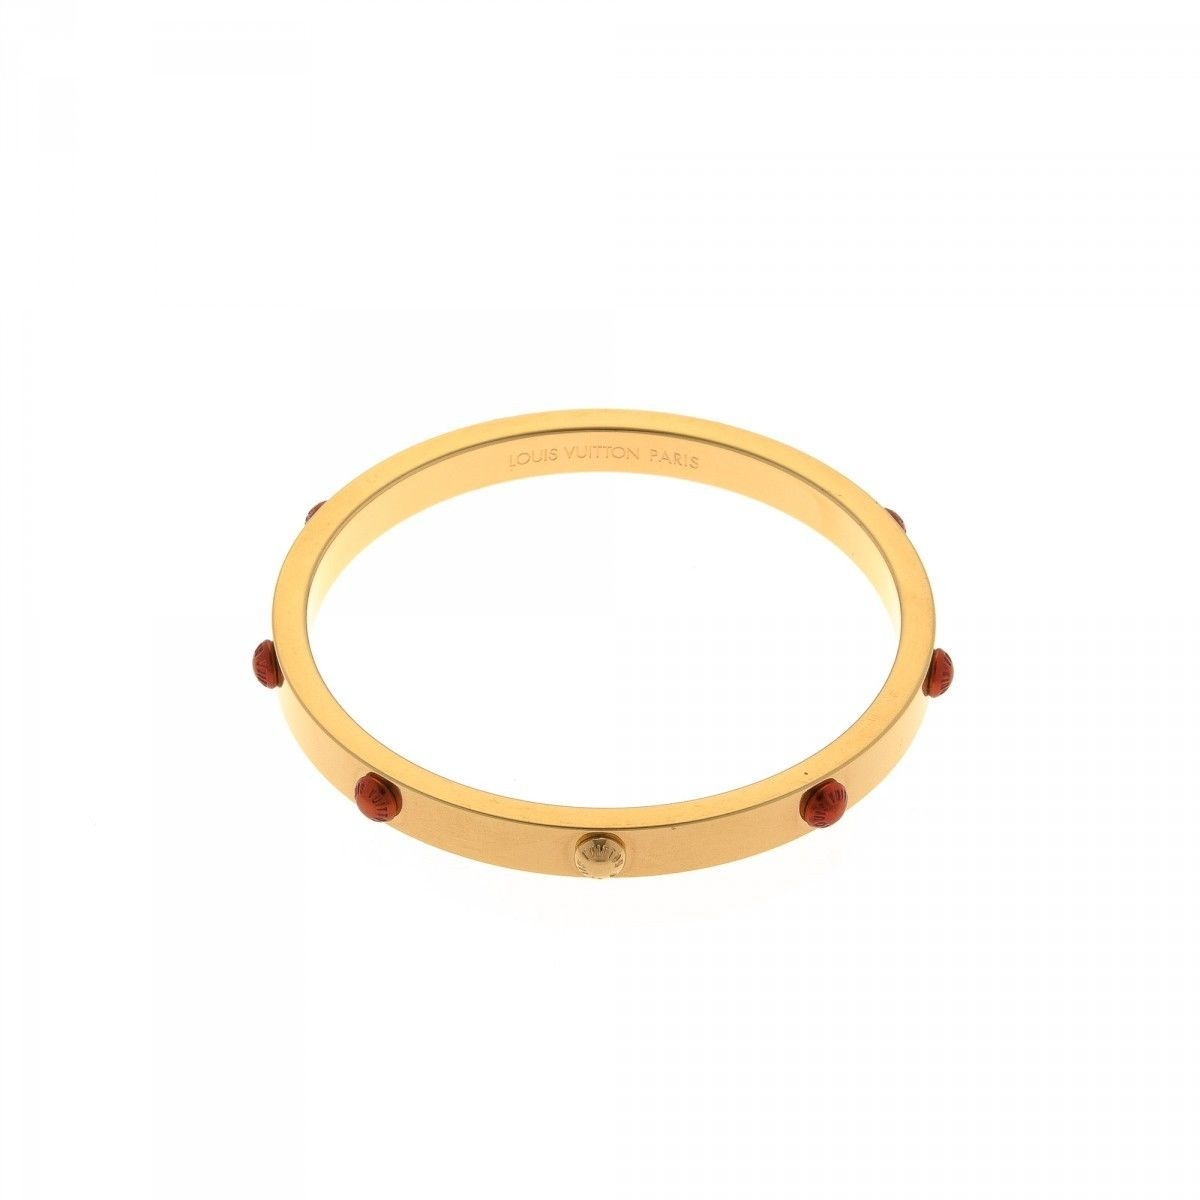 products goldfilled bangles indianbangles benedetto rossi cuff plated indian raf collections bangle madeinindia saint bracelets gold